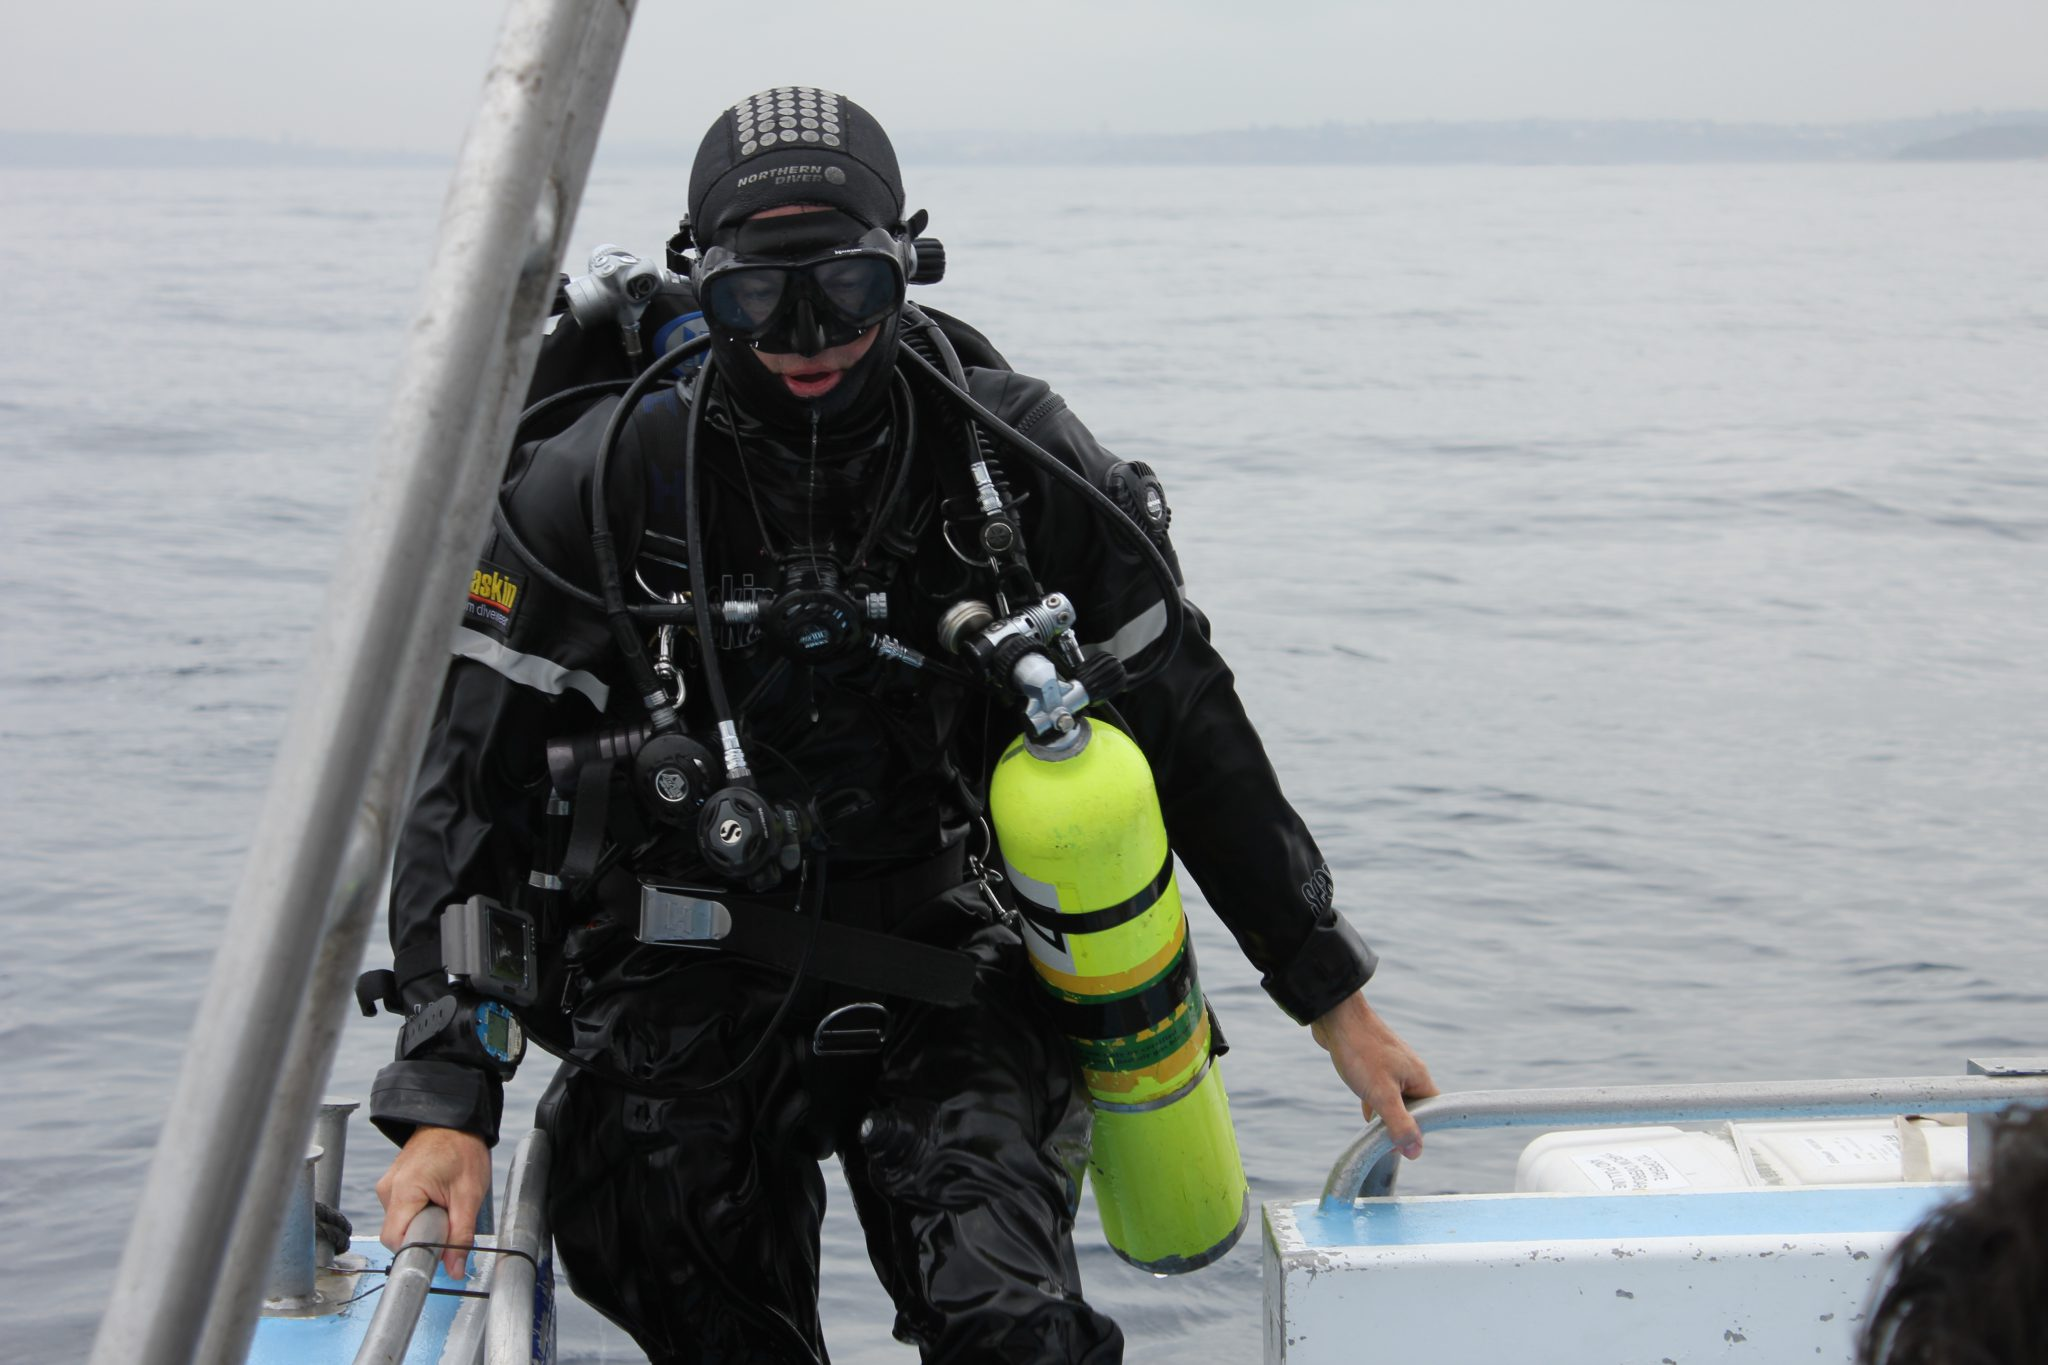 Tec 40 - TecRec - Technical Diving